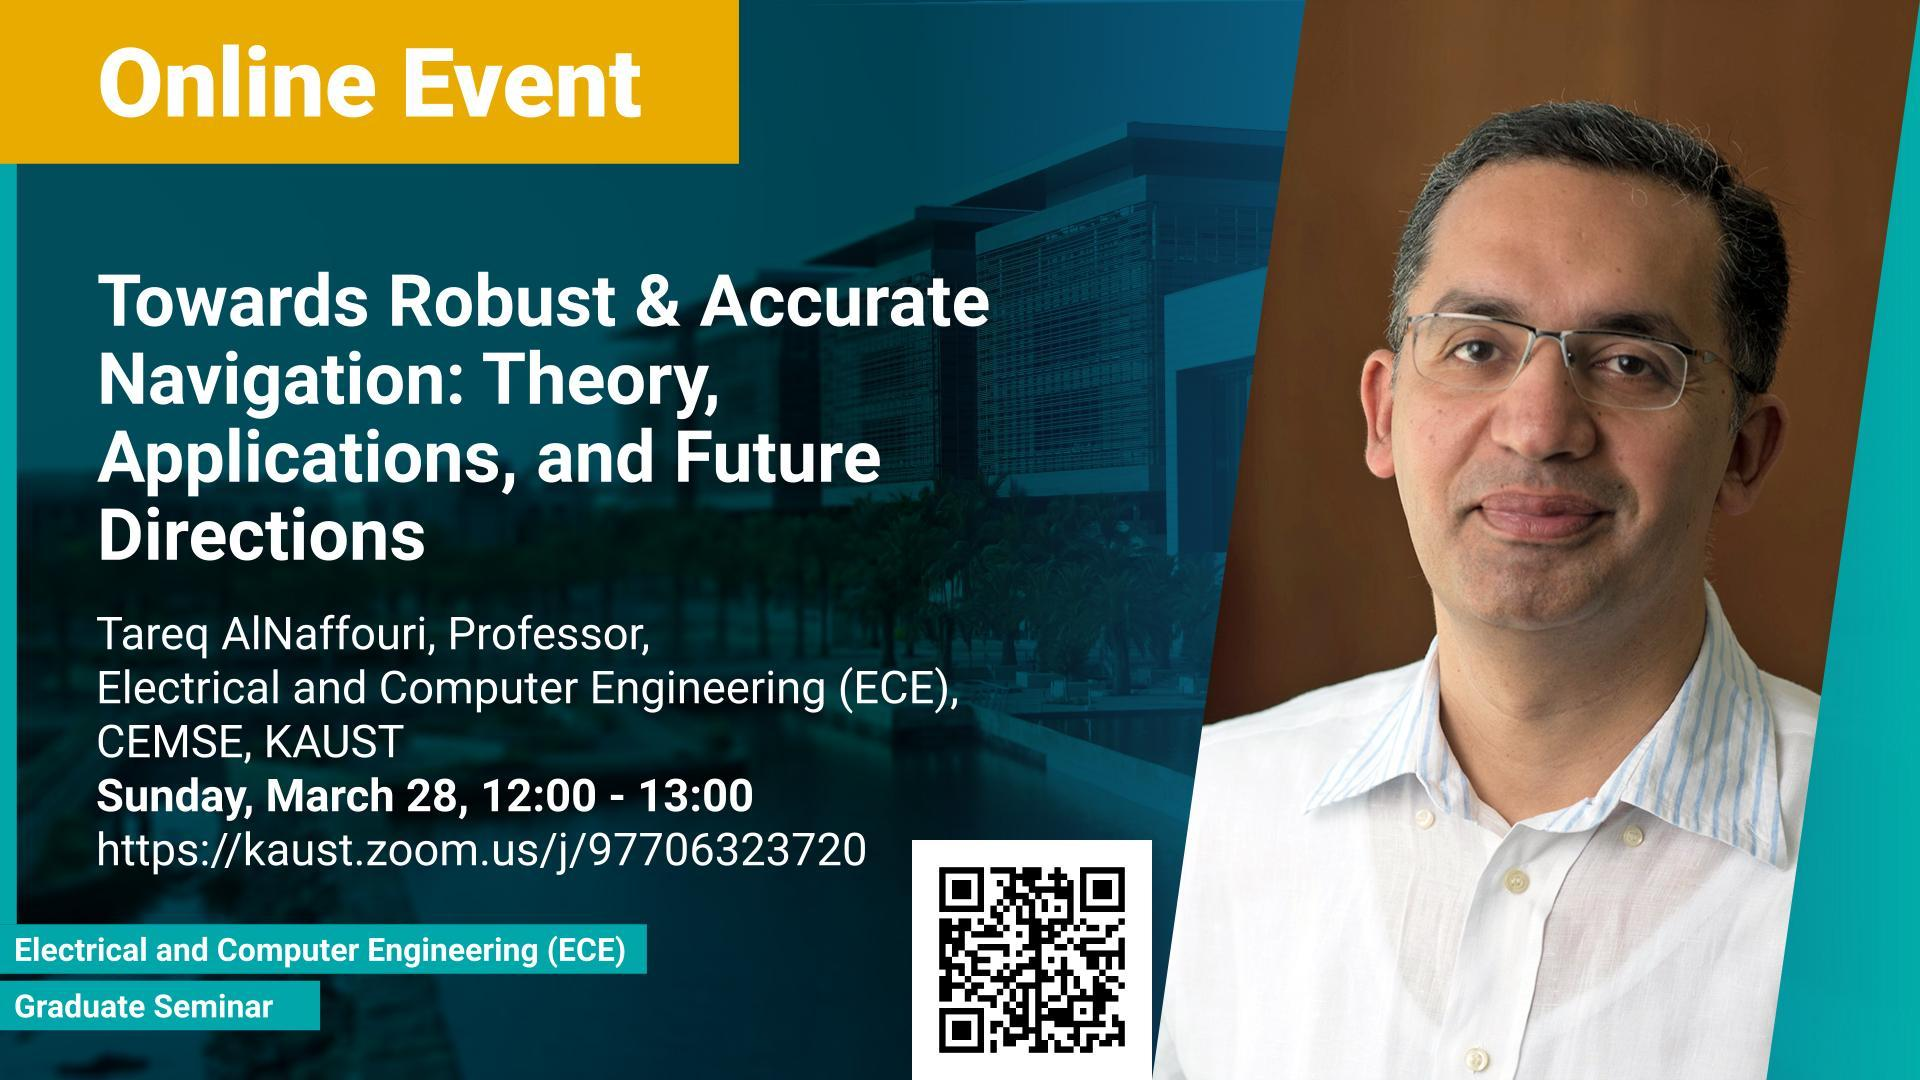 KAUST-CEMSE-ECE-Graduate-Seminar-Towards-Robust-&-Accurate-Navigation-Theory-Applications-and-Future-Directions-Tareq-AlNaffouri.jpg